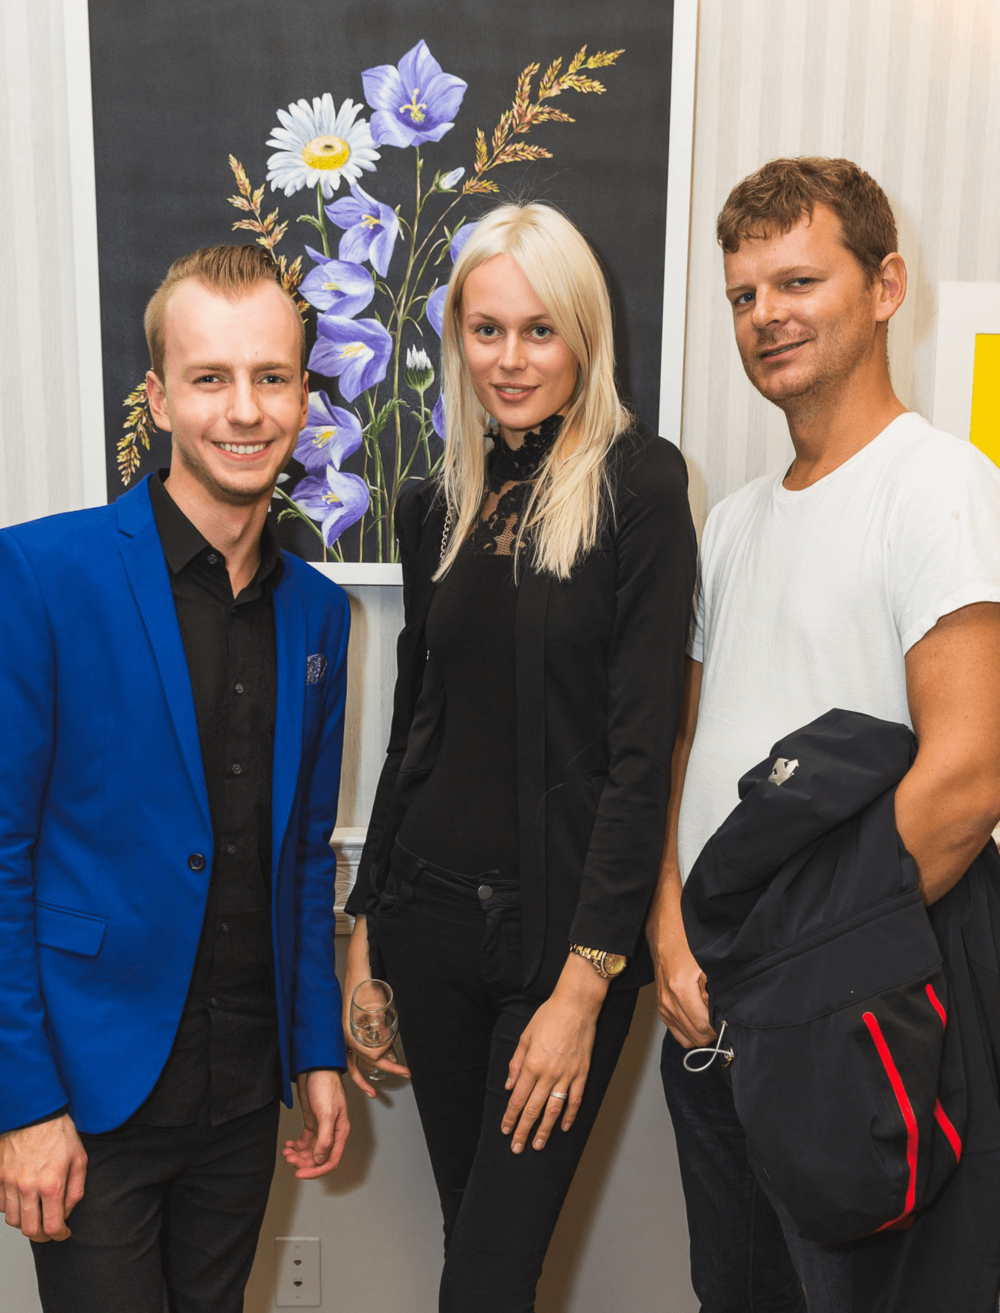 Valev Laube with an Estonian model Hanna Paat and entrepreneur Keith Siilats